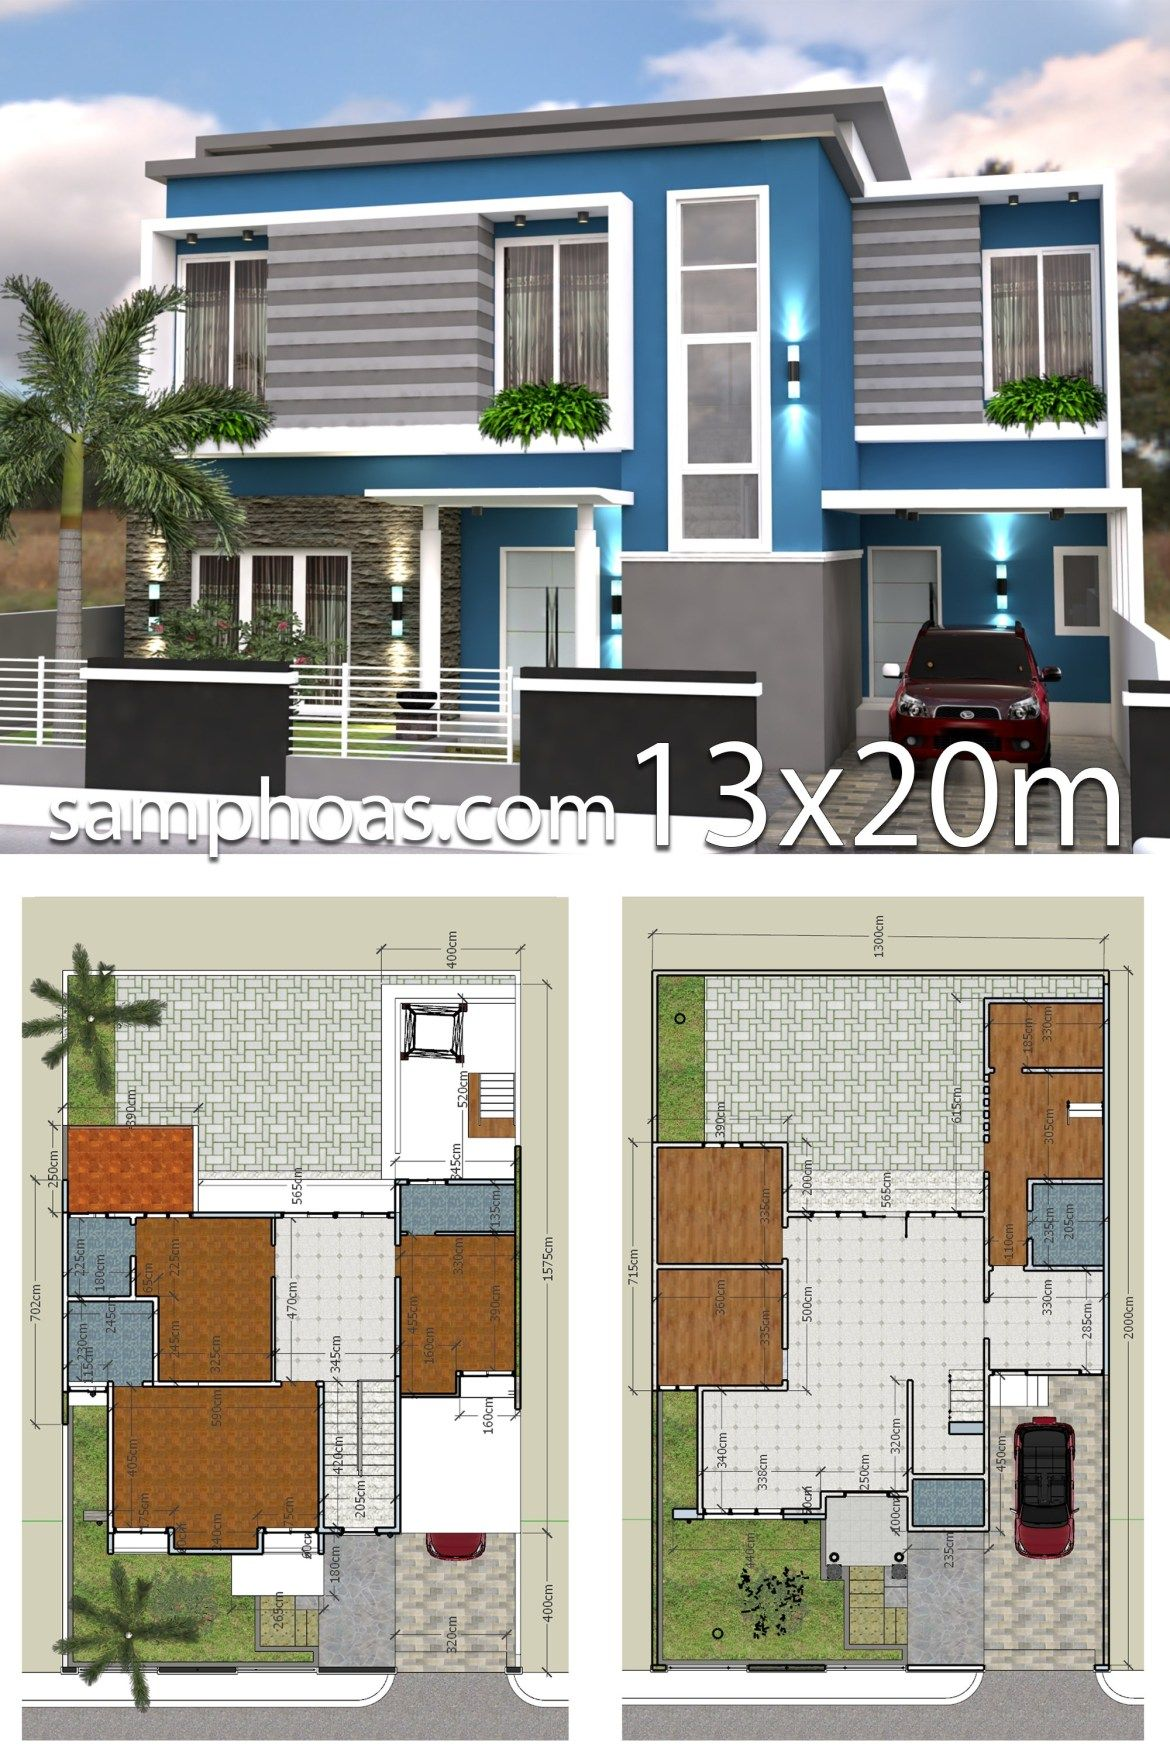 3d Home Design Plan 13x20m with Full Plan 6 Bedrooms ...